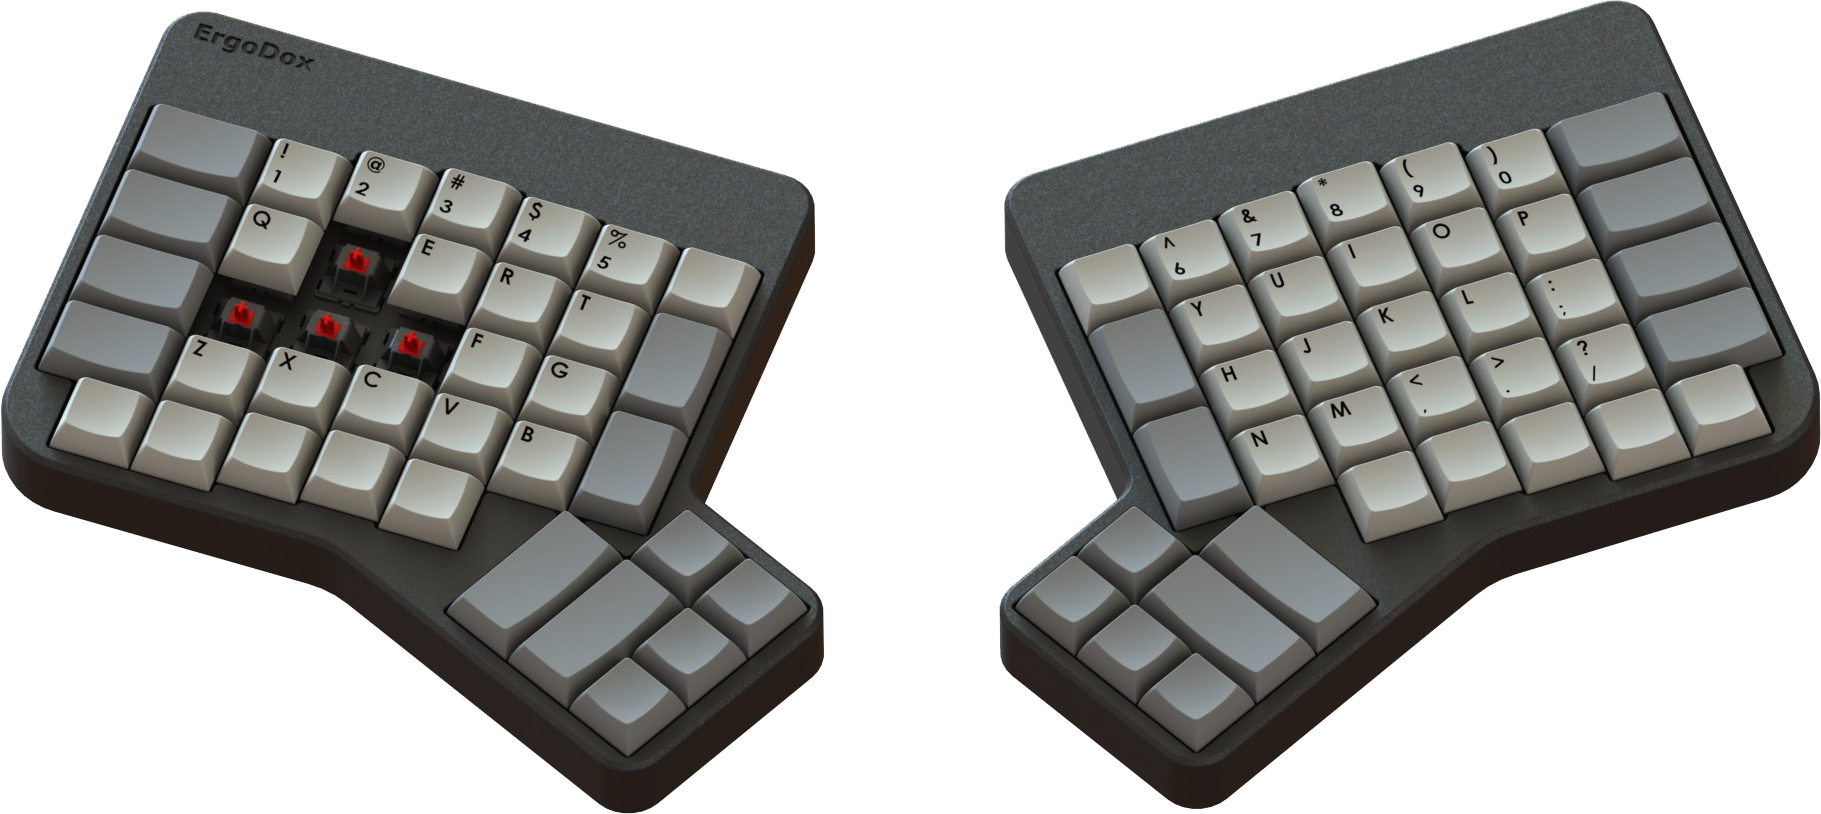 The Original ErgoDox Design